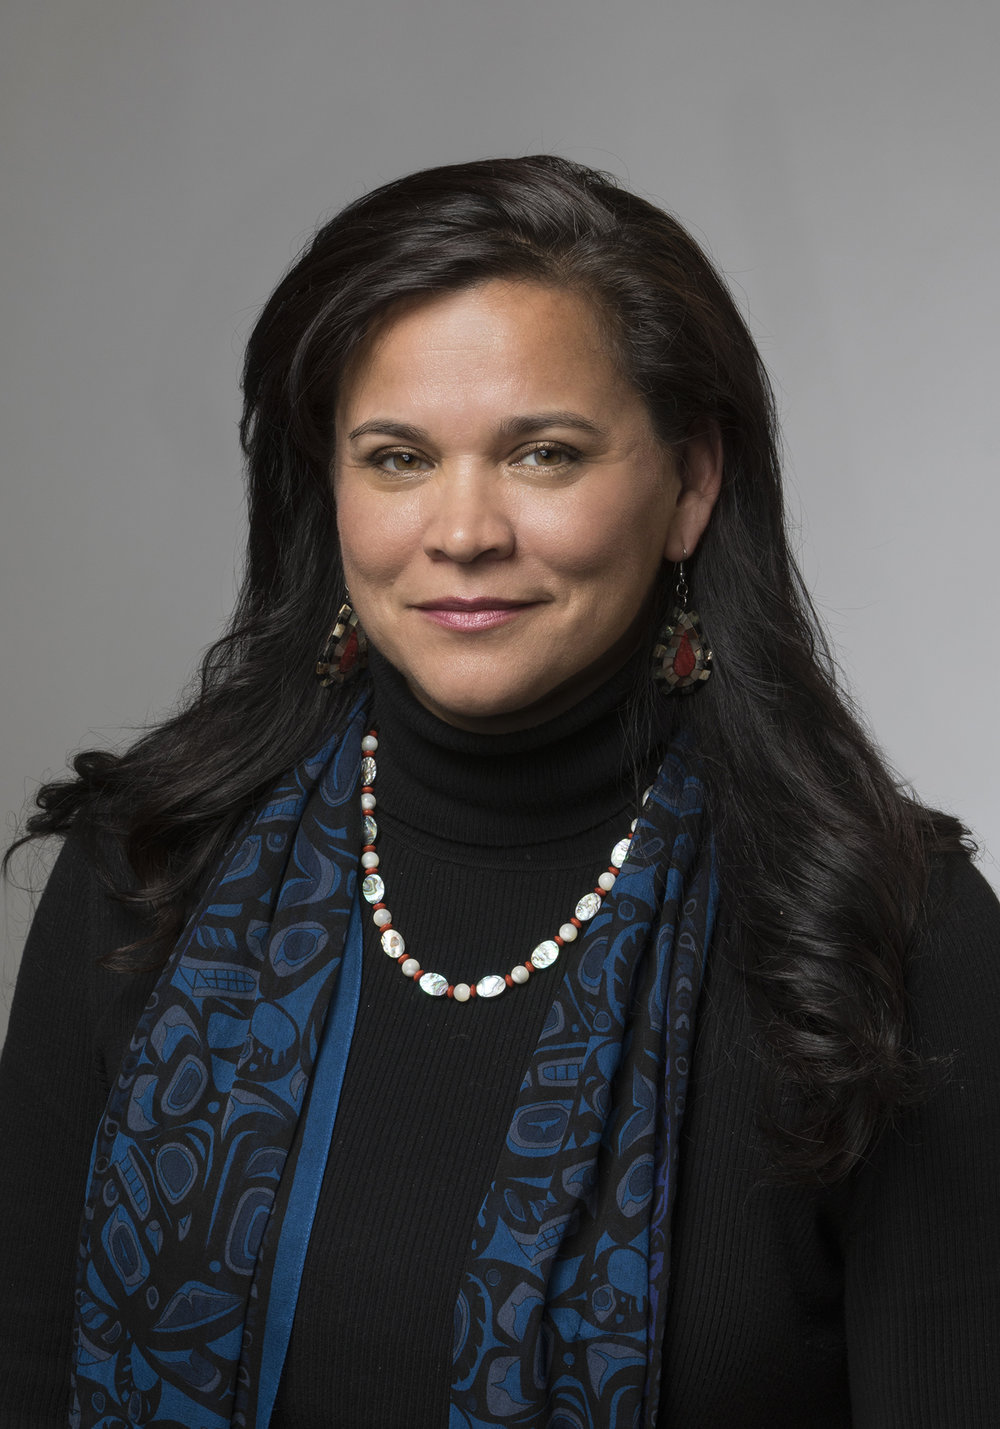 Janeen Comenote, Executive Director National Urban Indian Family Coalition